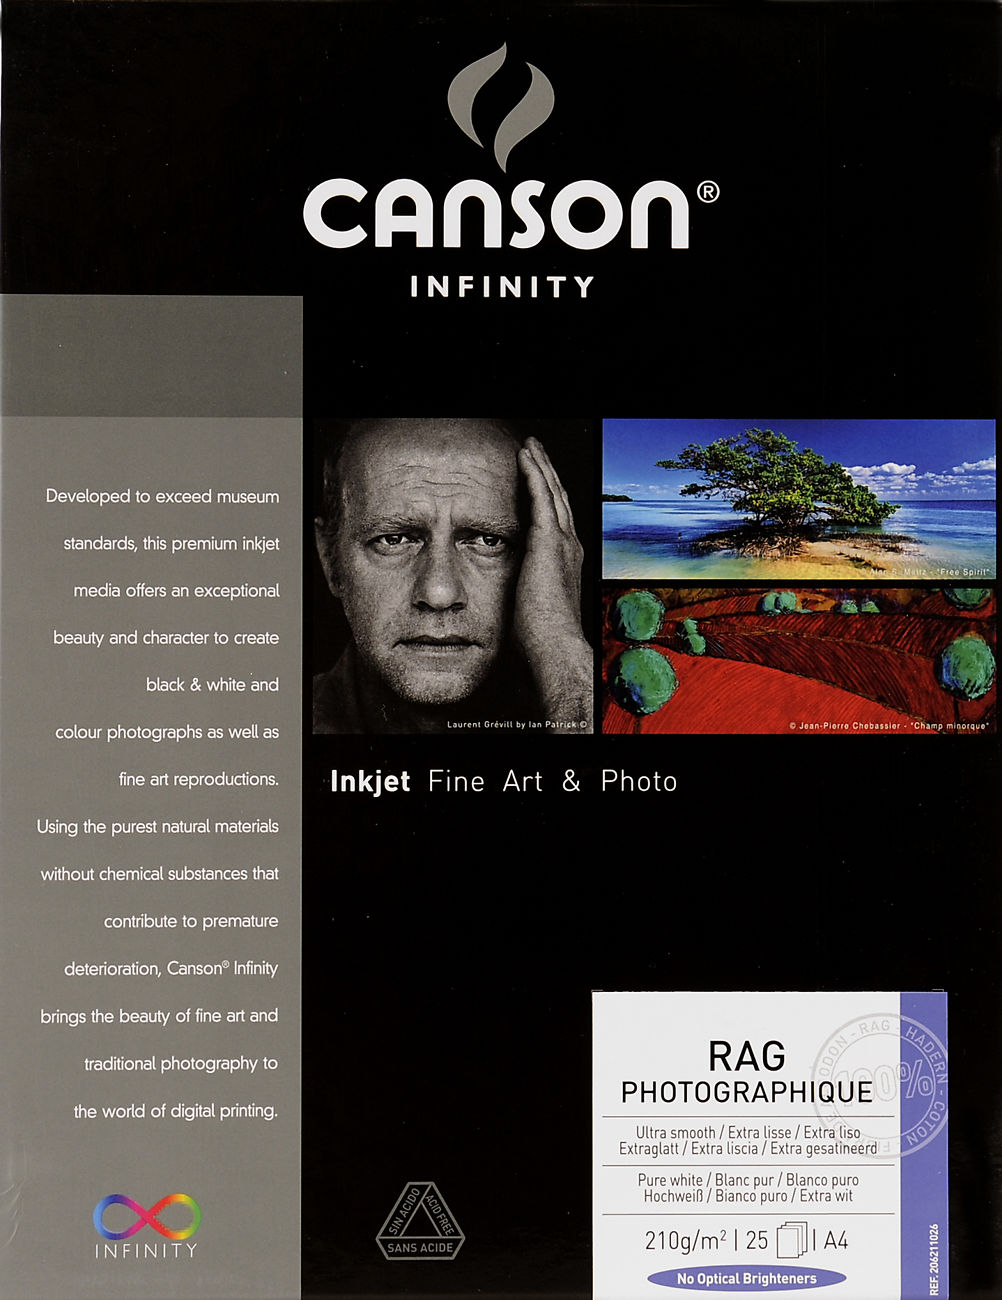 Canson Infinity Rag Photographique 210gsm Image